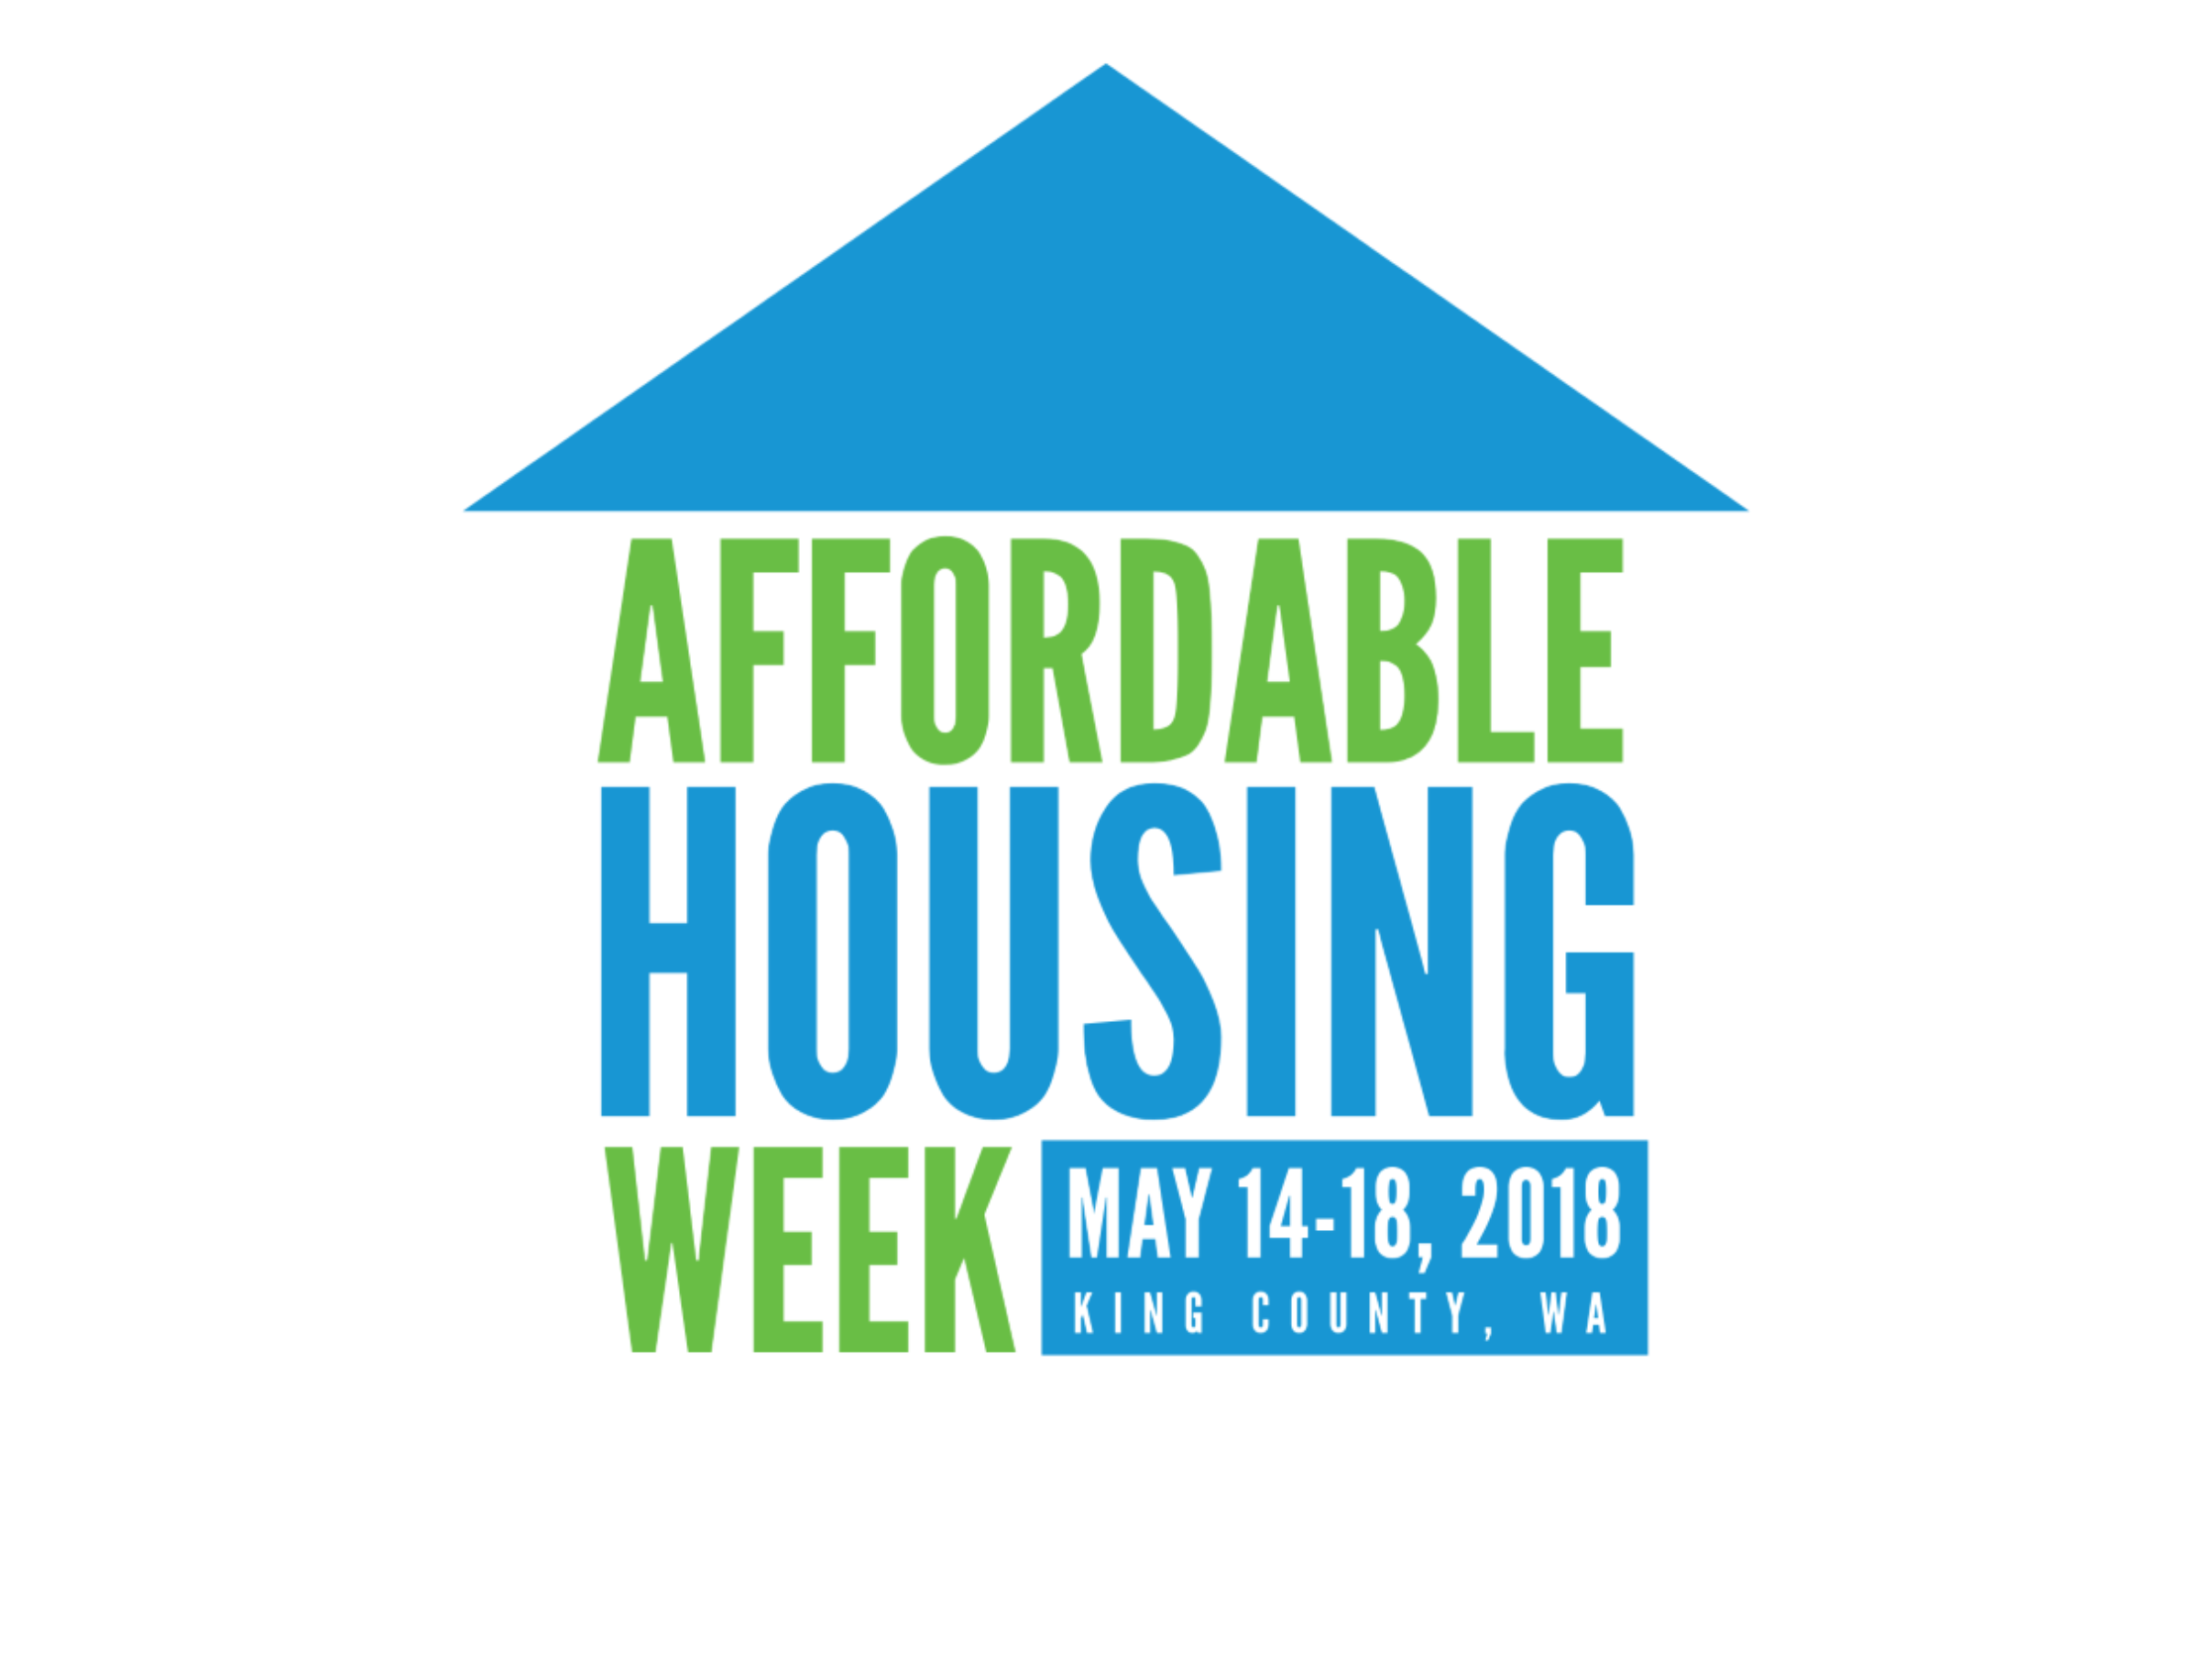 Logo of Affordable Housing Week in King County, May 14-18, 2018